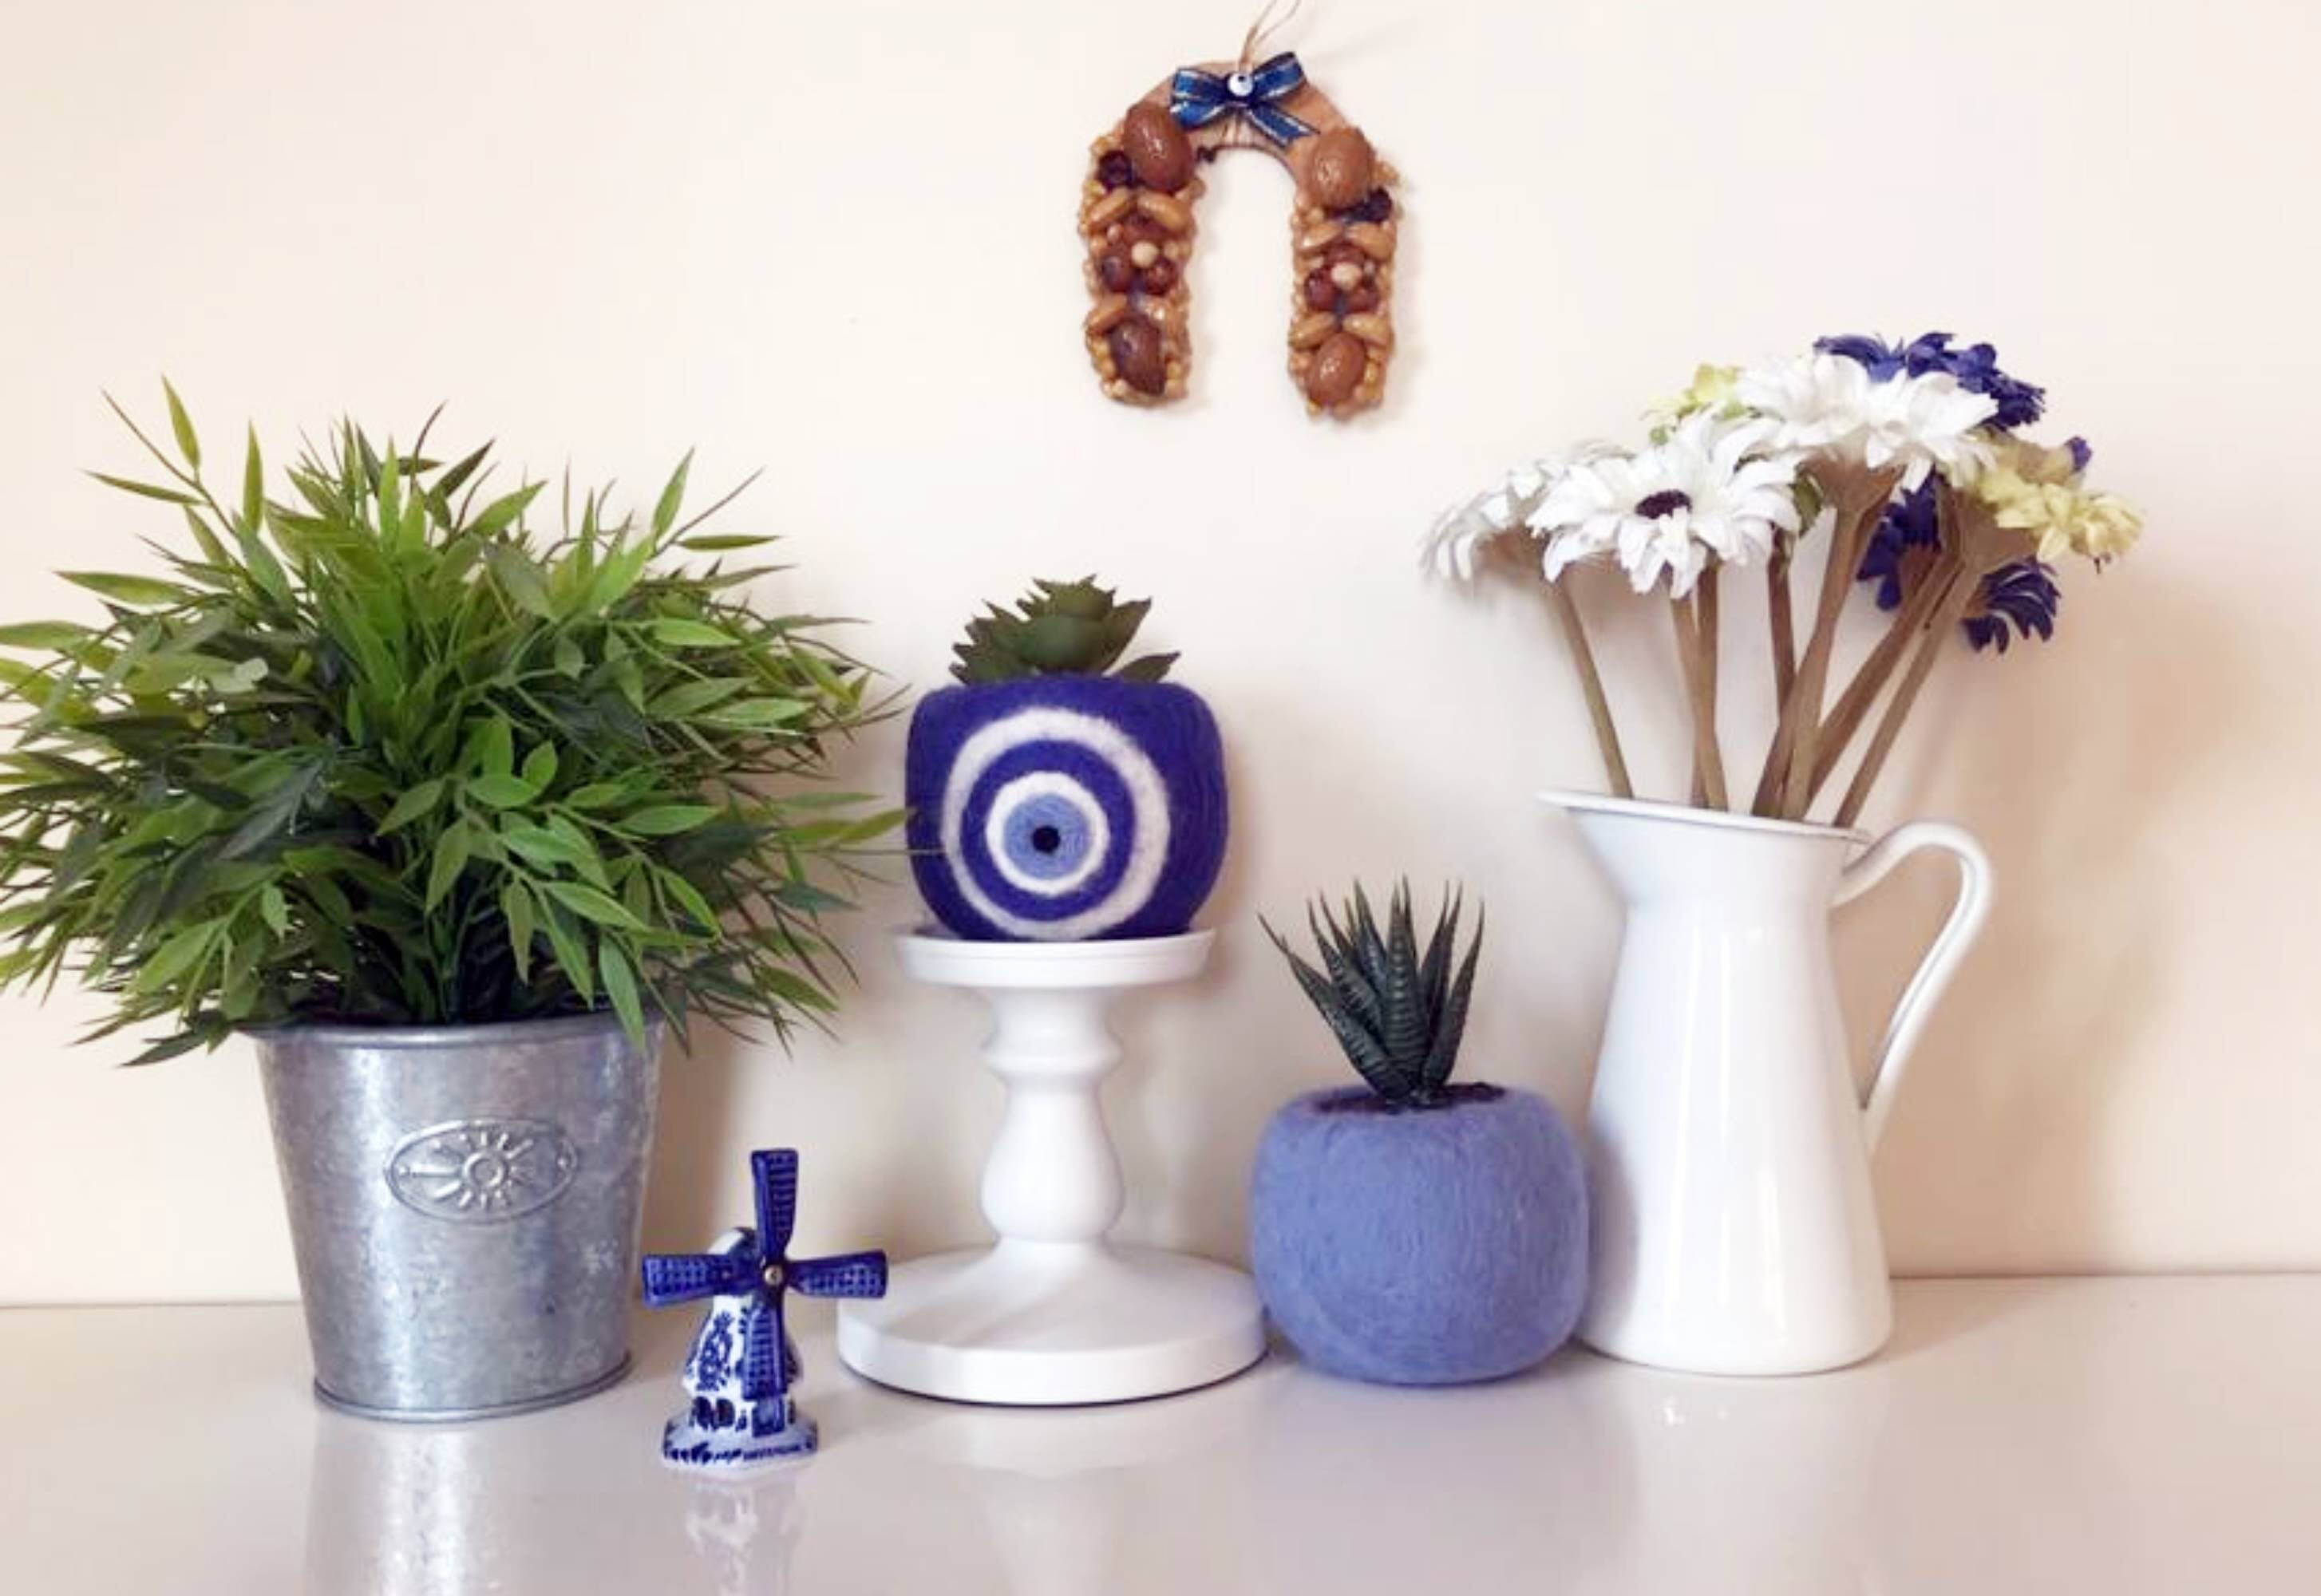 gardening gift for her table centerpiece blue planters planter pots Decorative evil eye cactus planter decor home decor gift for mom